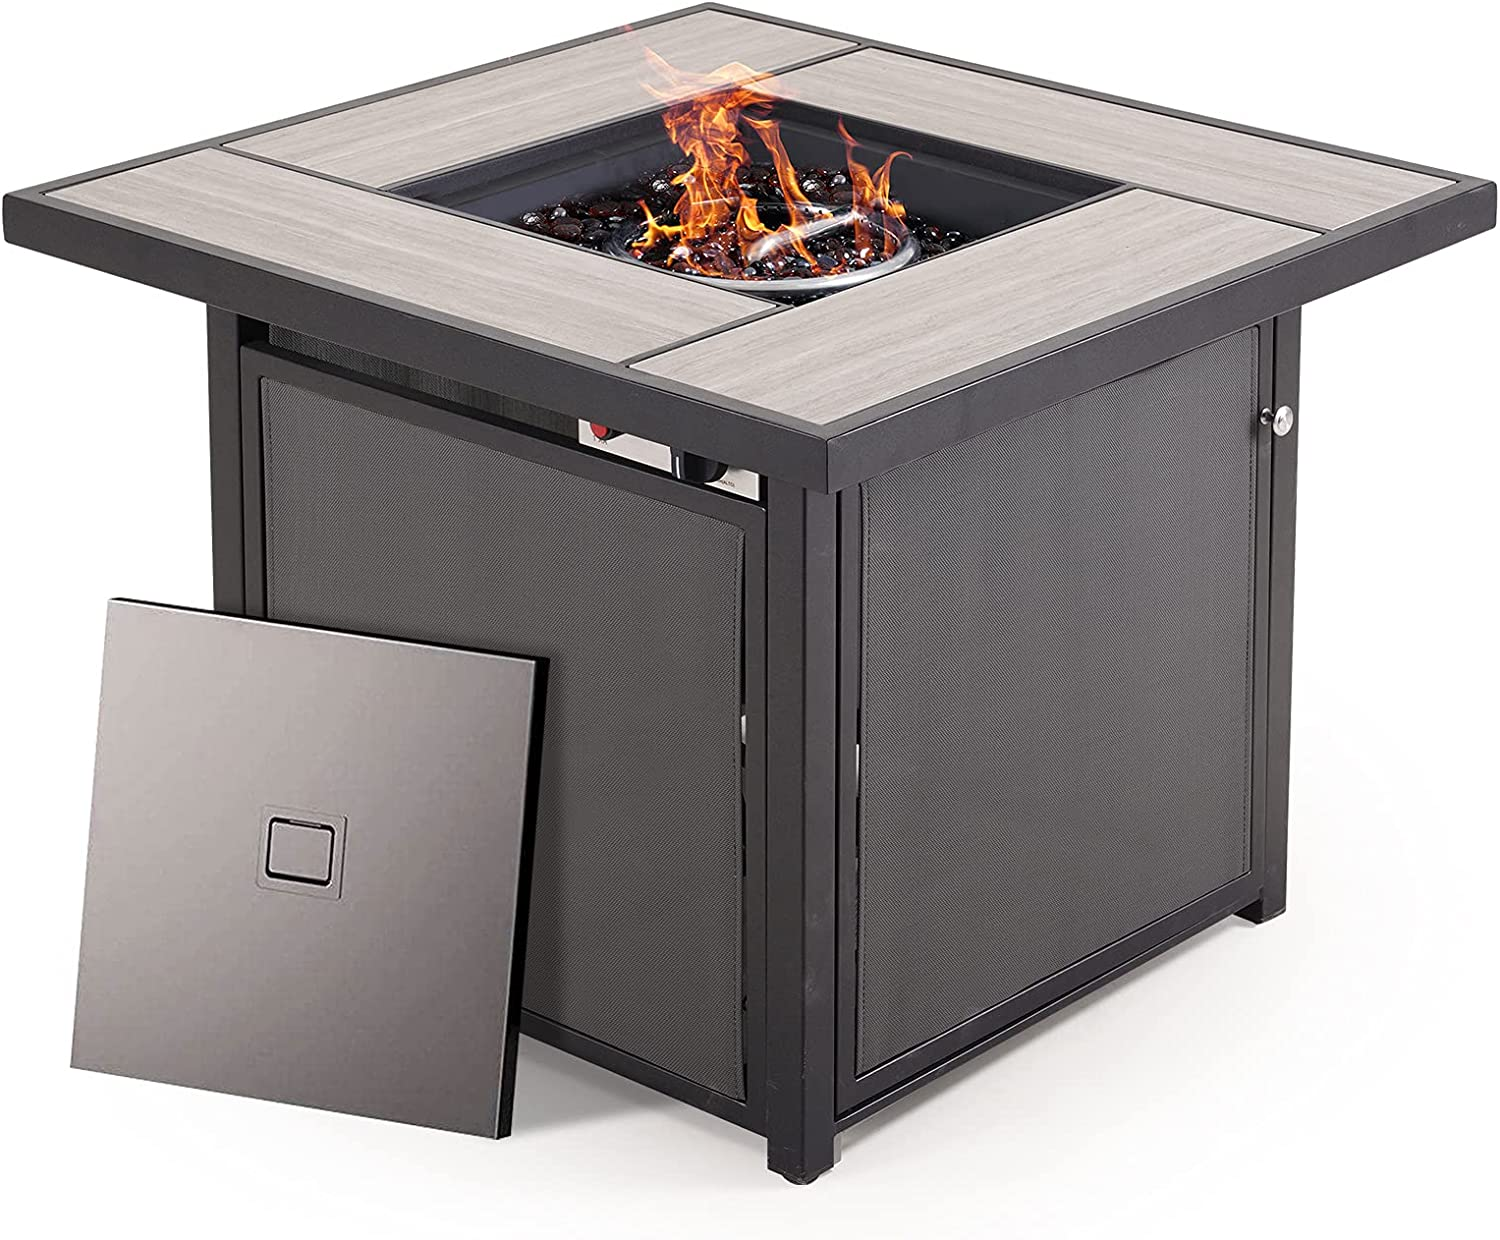 AOBOCO Grand Patio Propane Fire Pit Table,32 inch Outdoor Square Gas Fire Table with Lid,CSA Safety Certification,Ceramic Tile Firepits for Outside Patio